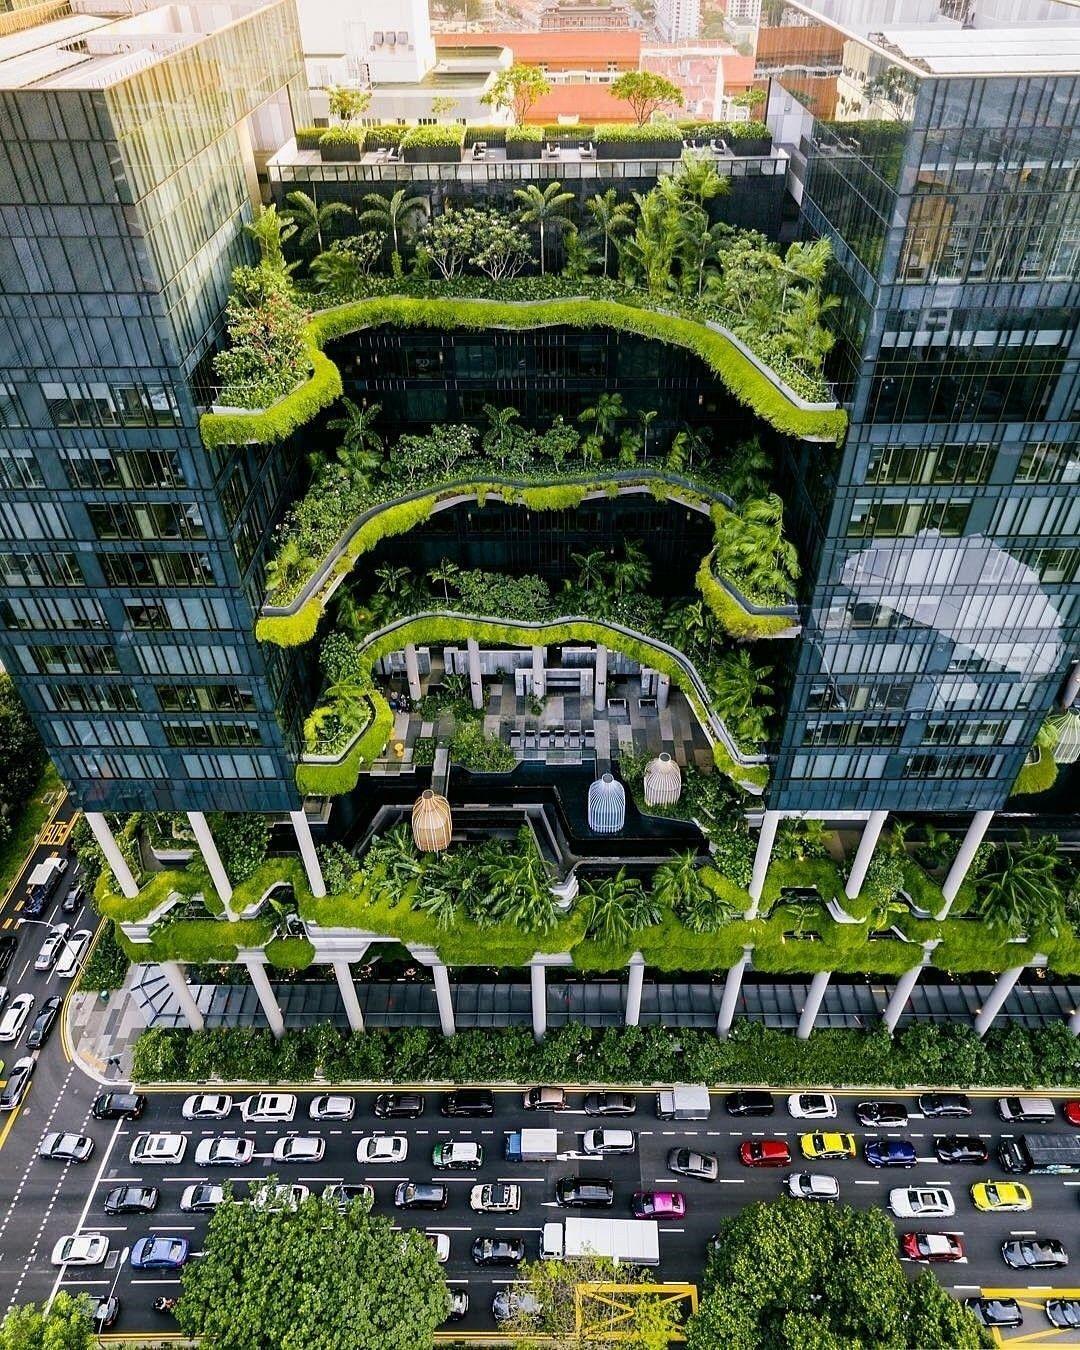 Singapore When Architecture Meets Nature An Idea Of Our Future Cities Bennytgh Pepsl Green Building Architecture Eco Buildings Green Architecture